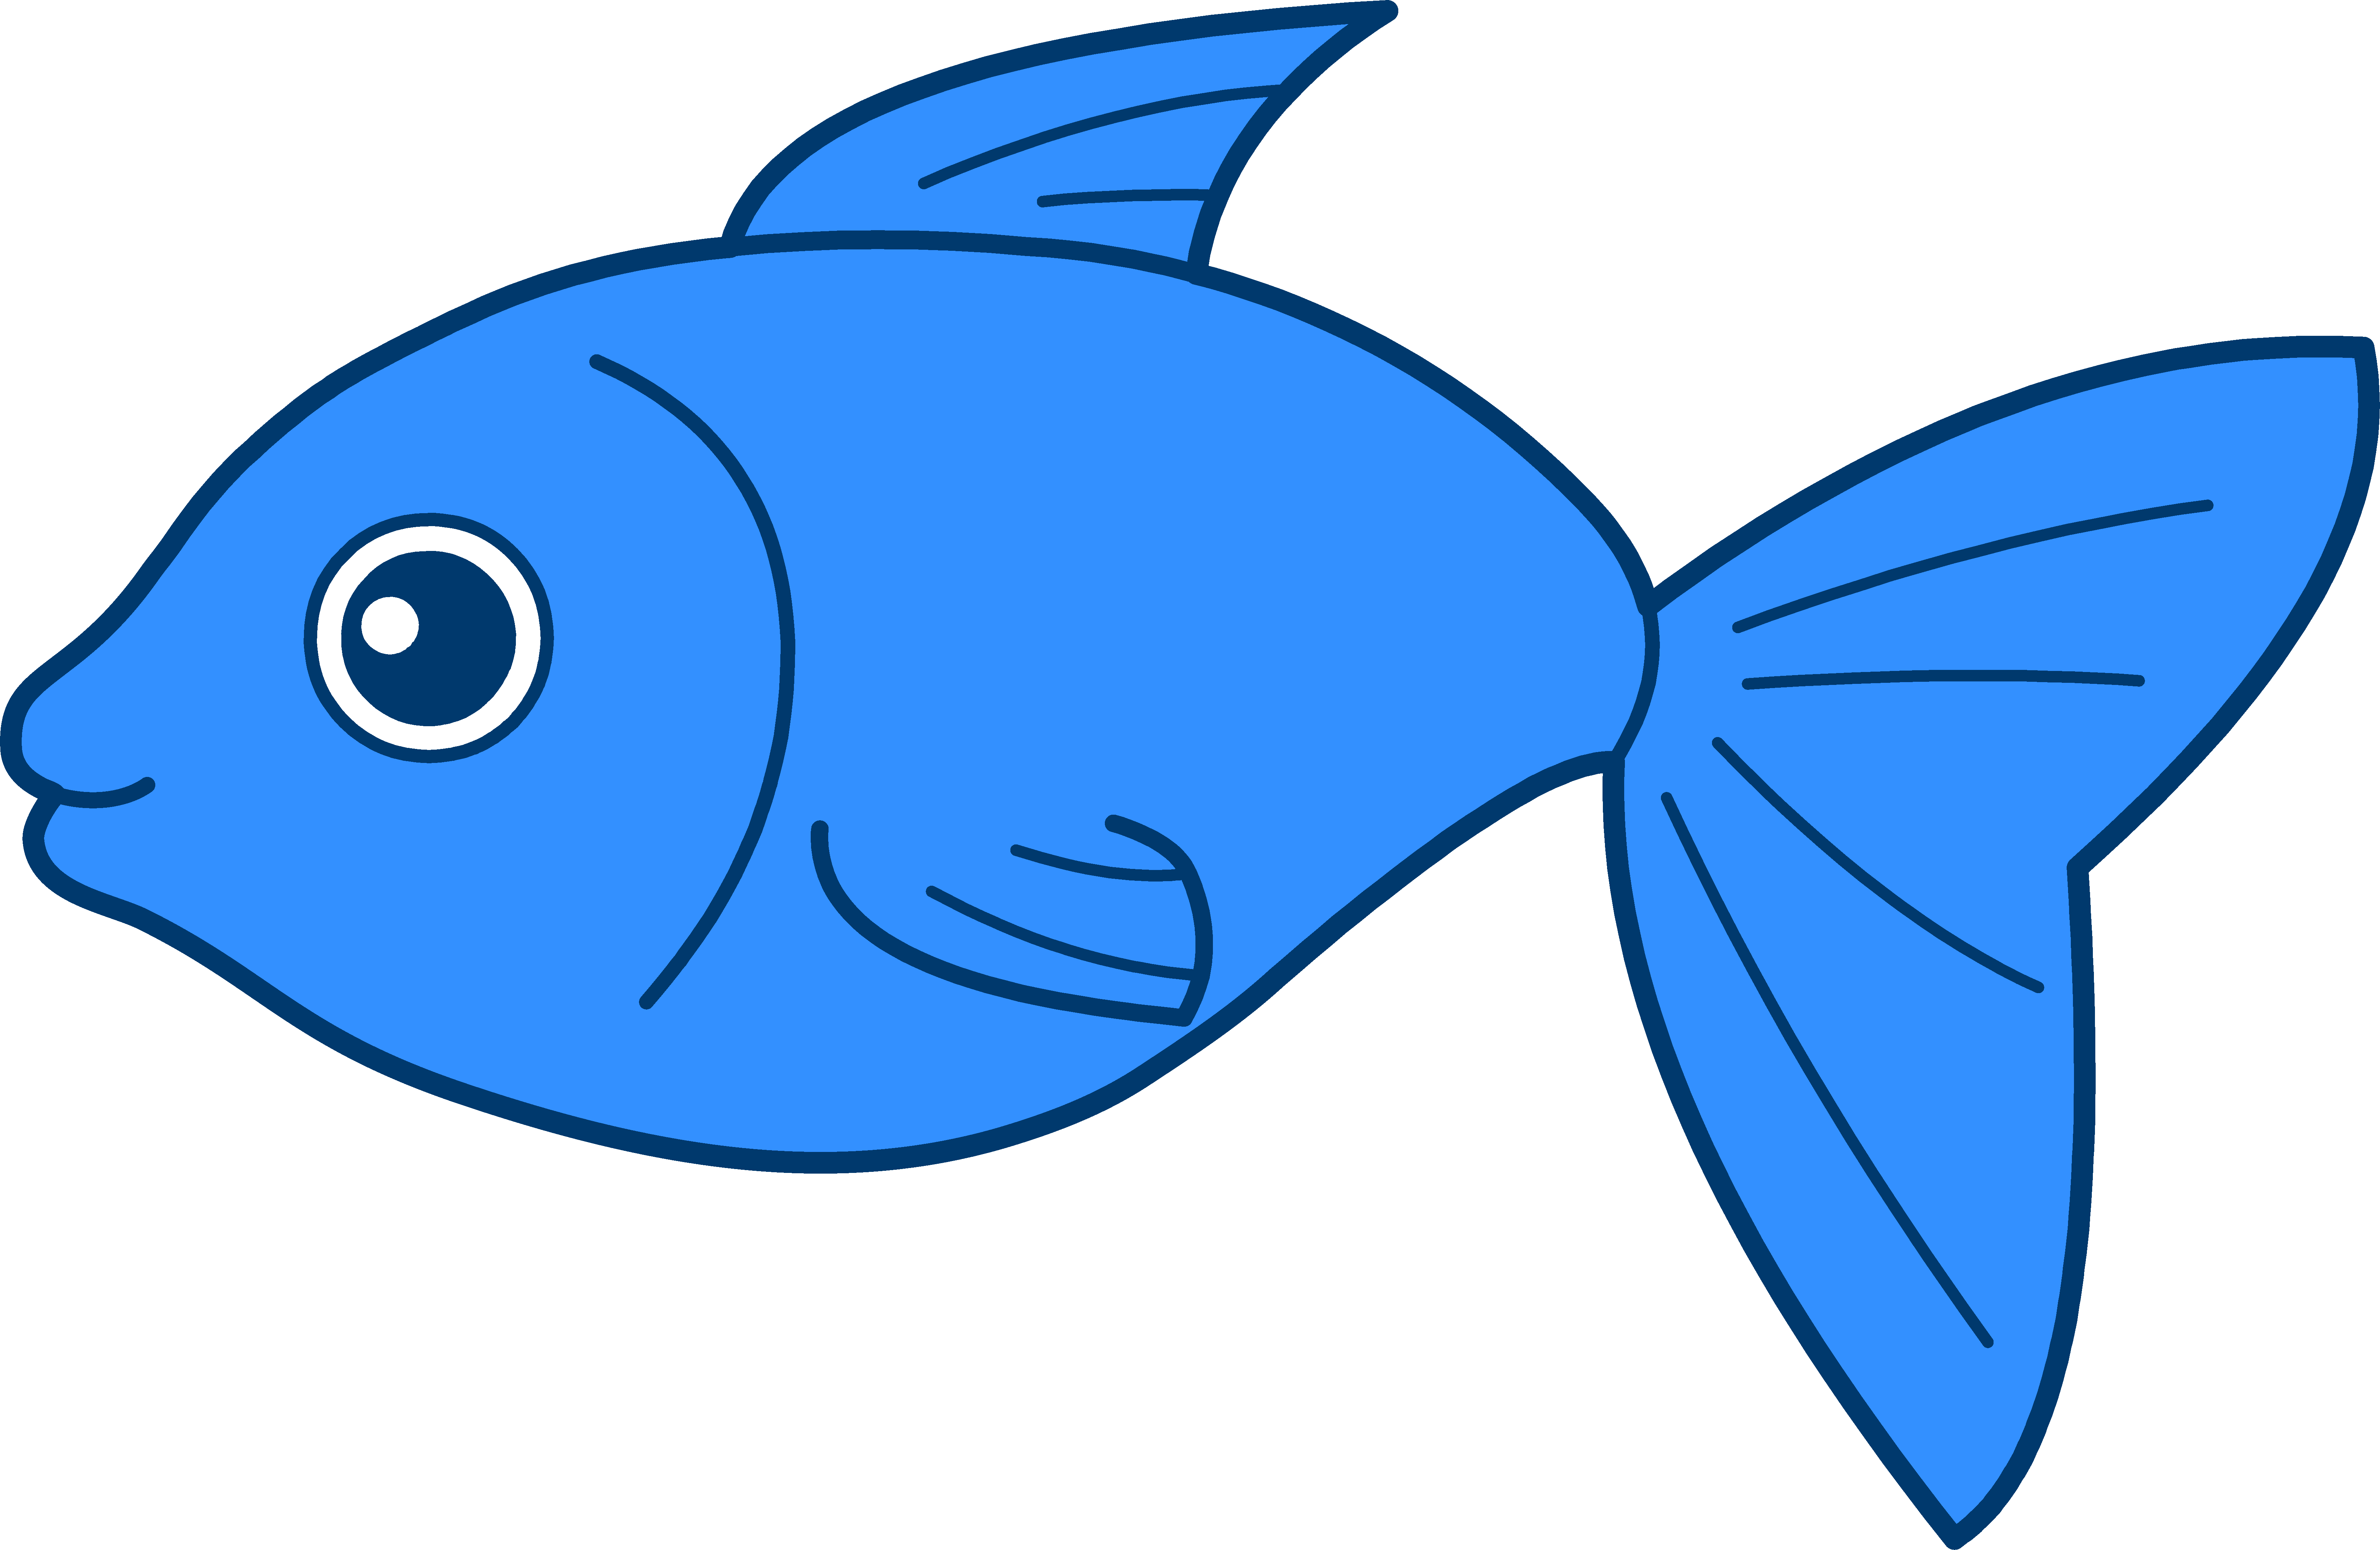 Fish clipart images clipart best for Fish clipart images